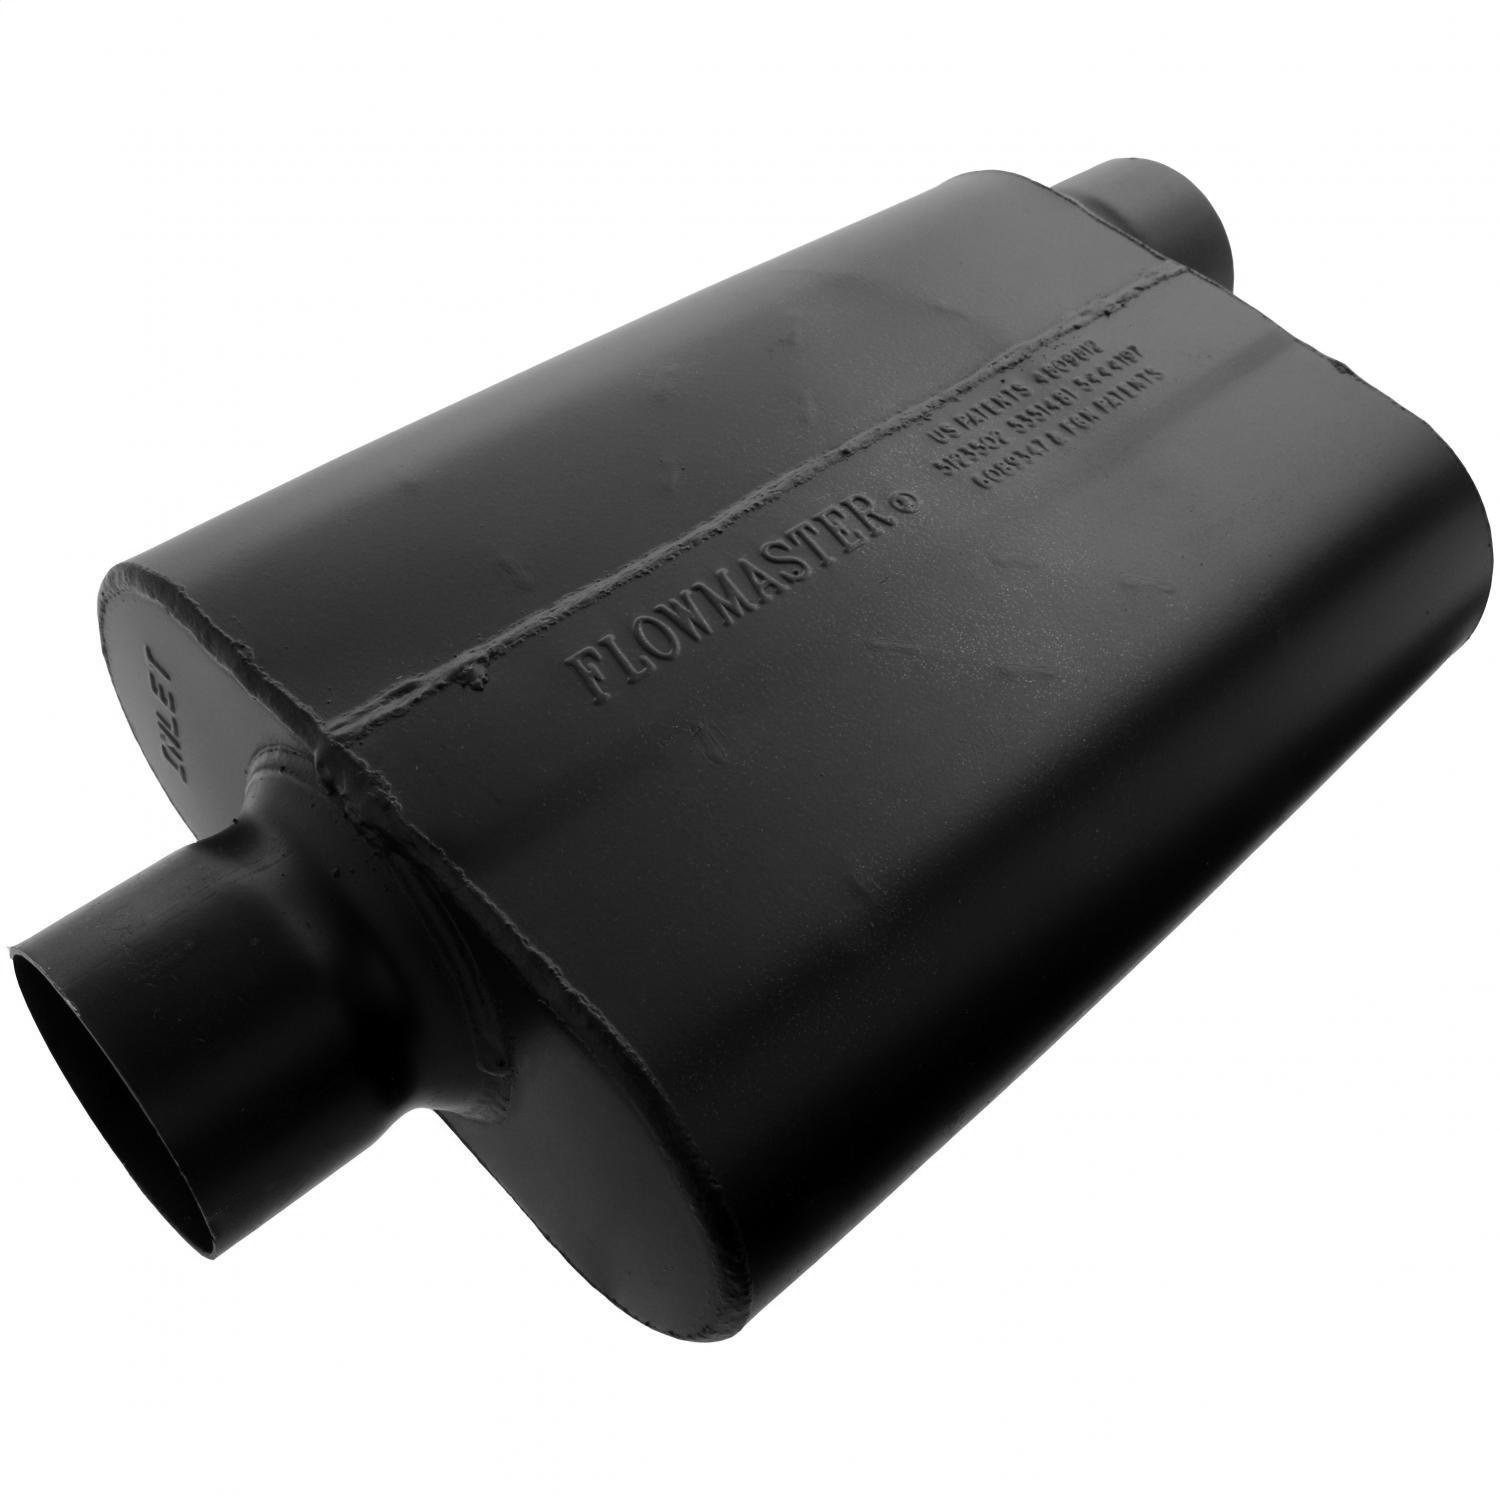 Flowmaster 943047 Super 44 Muffler - 3.00 Center IN / 3.00 Offset OUT - Aggressive Sound by Flowmaster (Image #3)